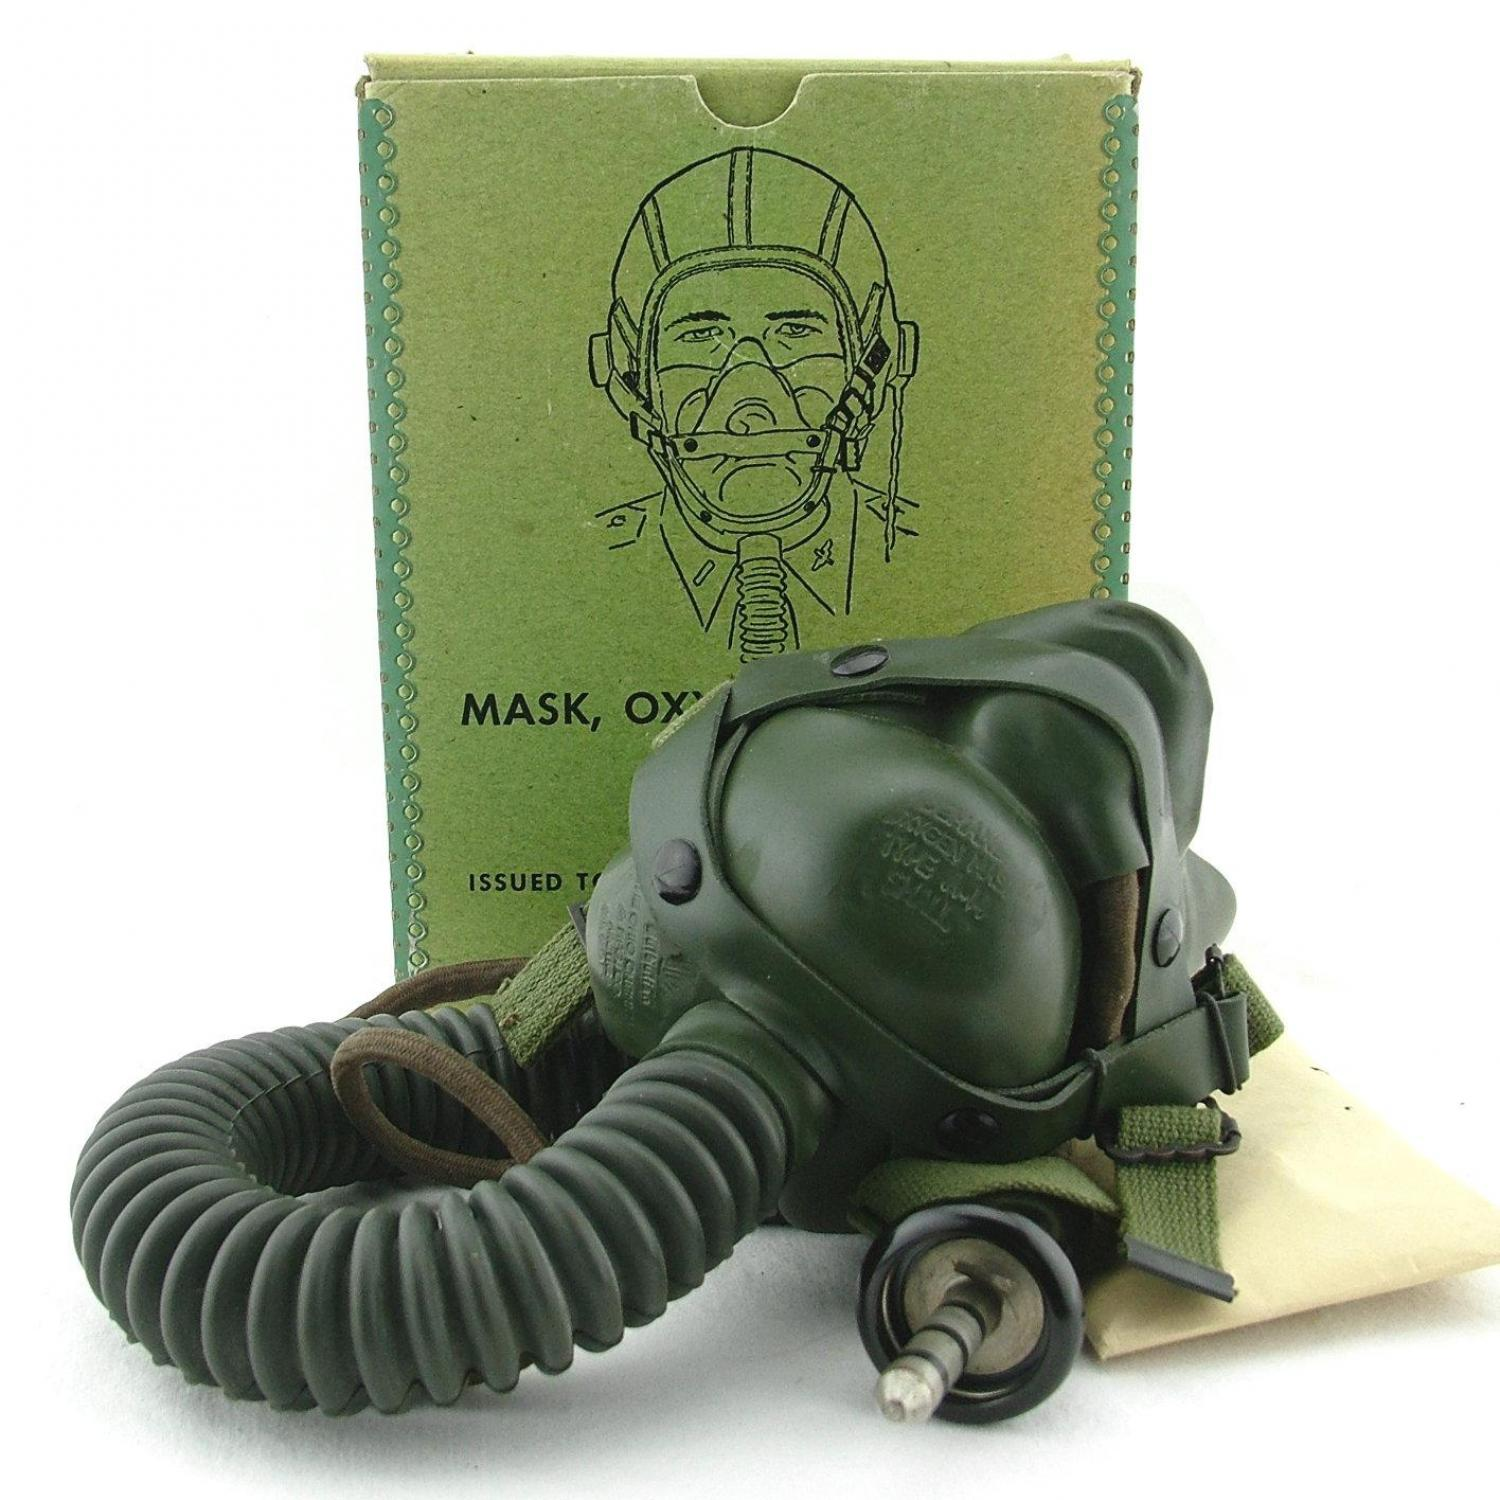 USAAF A-14 oxygen mask, c/w T-44, boxed